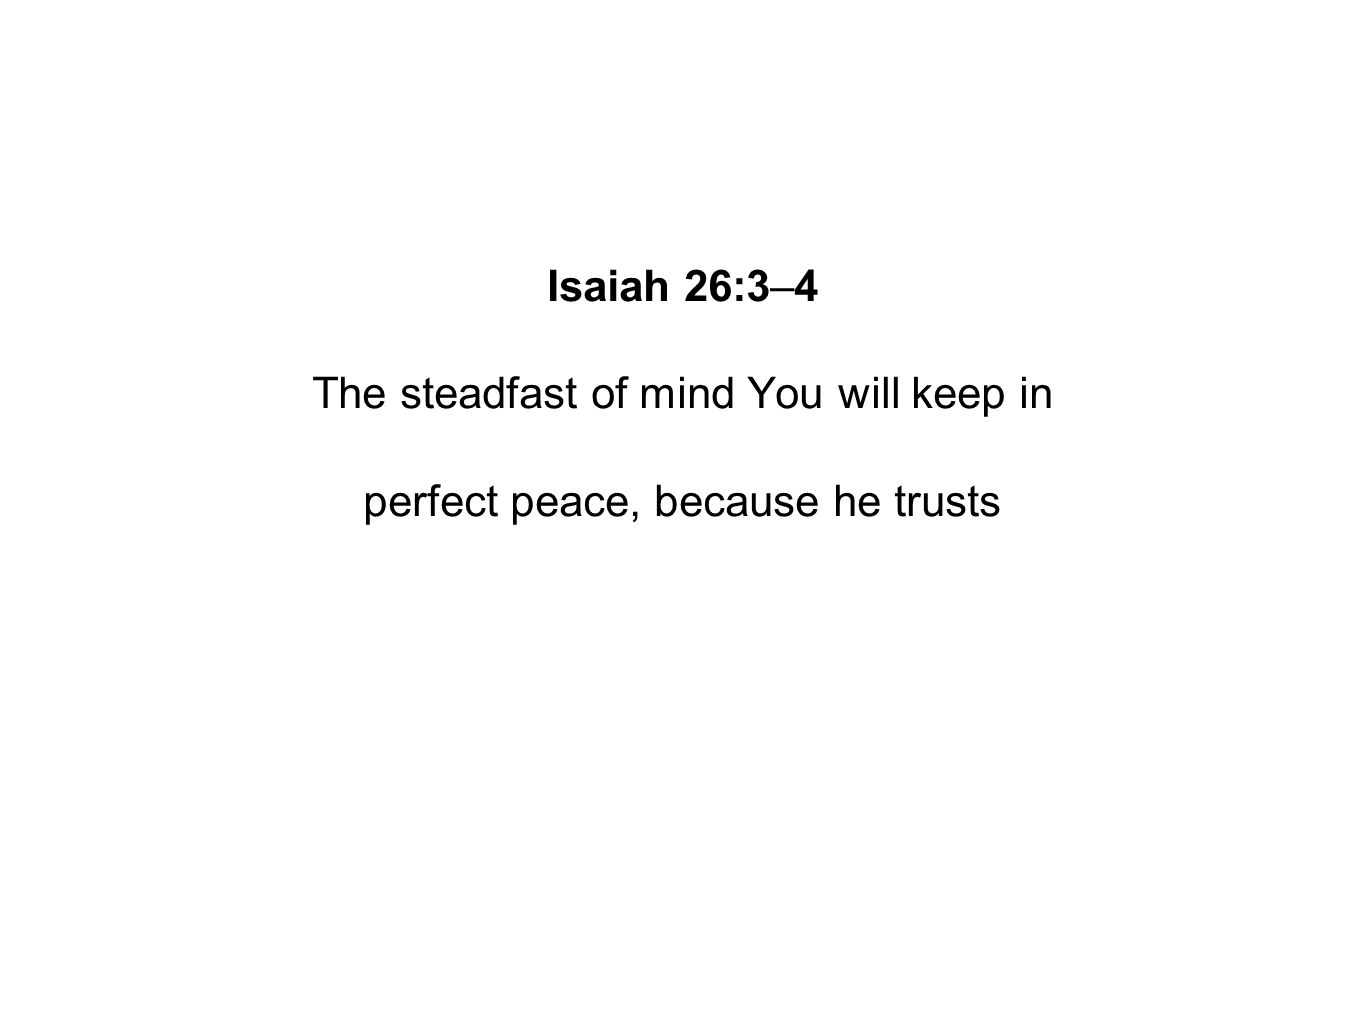 Isaiah 26:3–4 The steadfast of mind You will keep in perfect peace, because he trusts